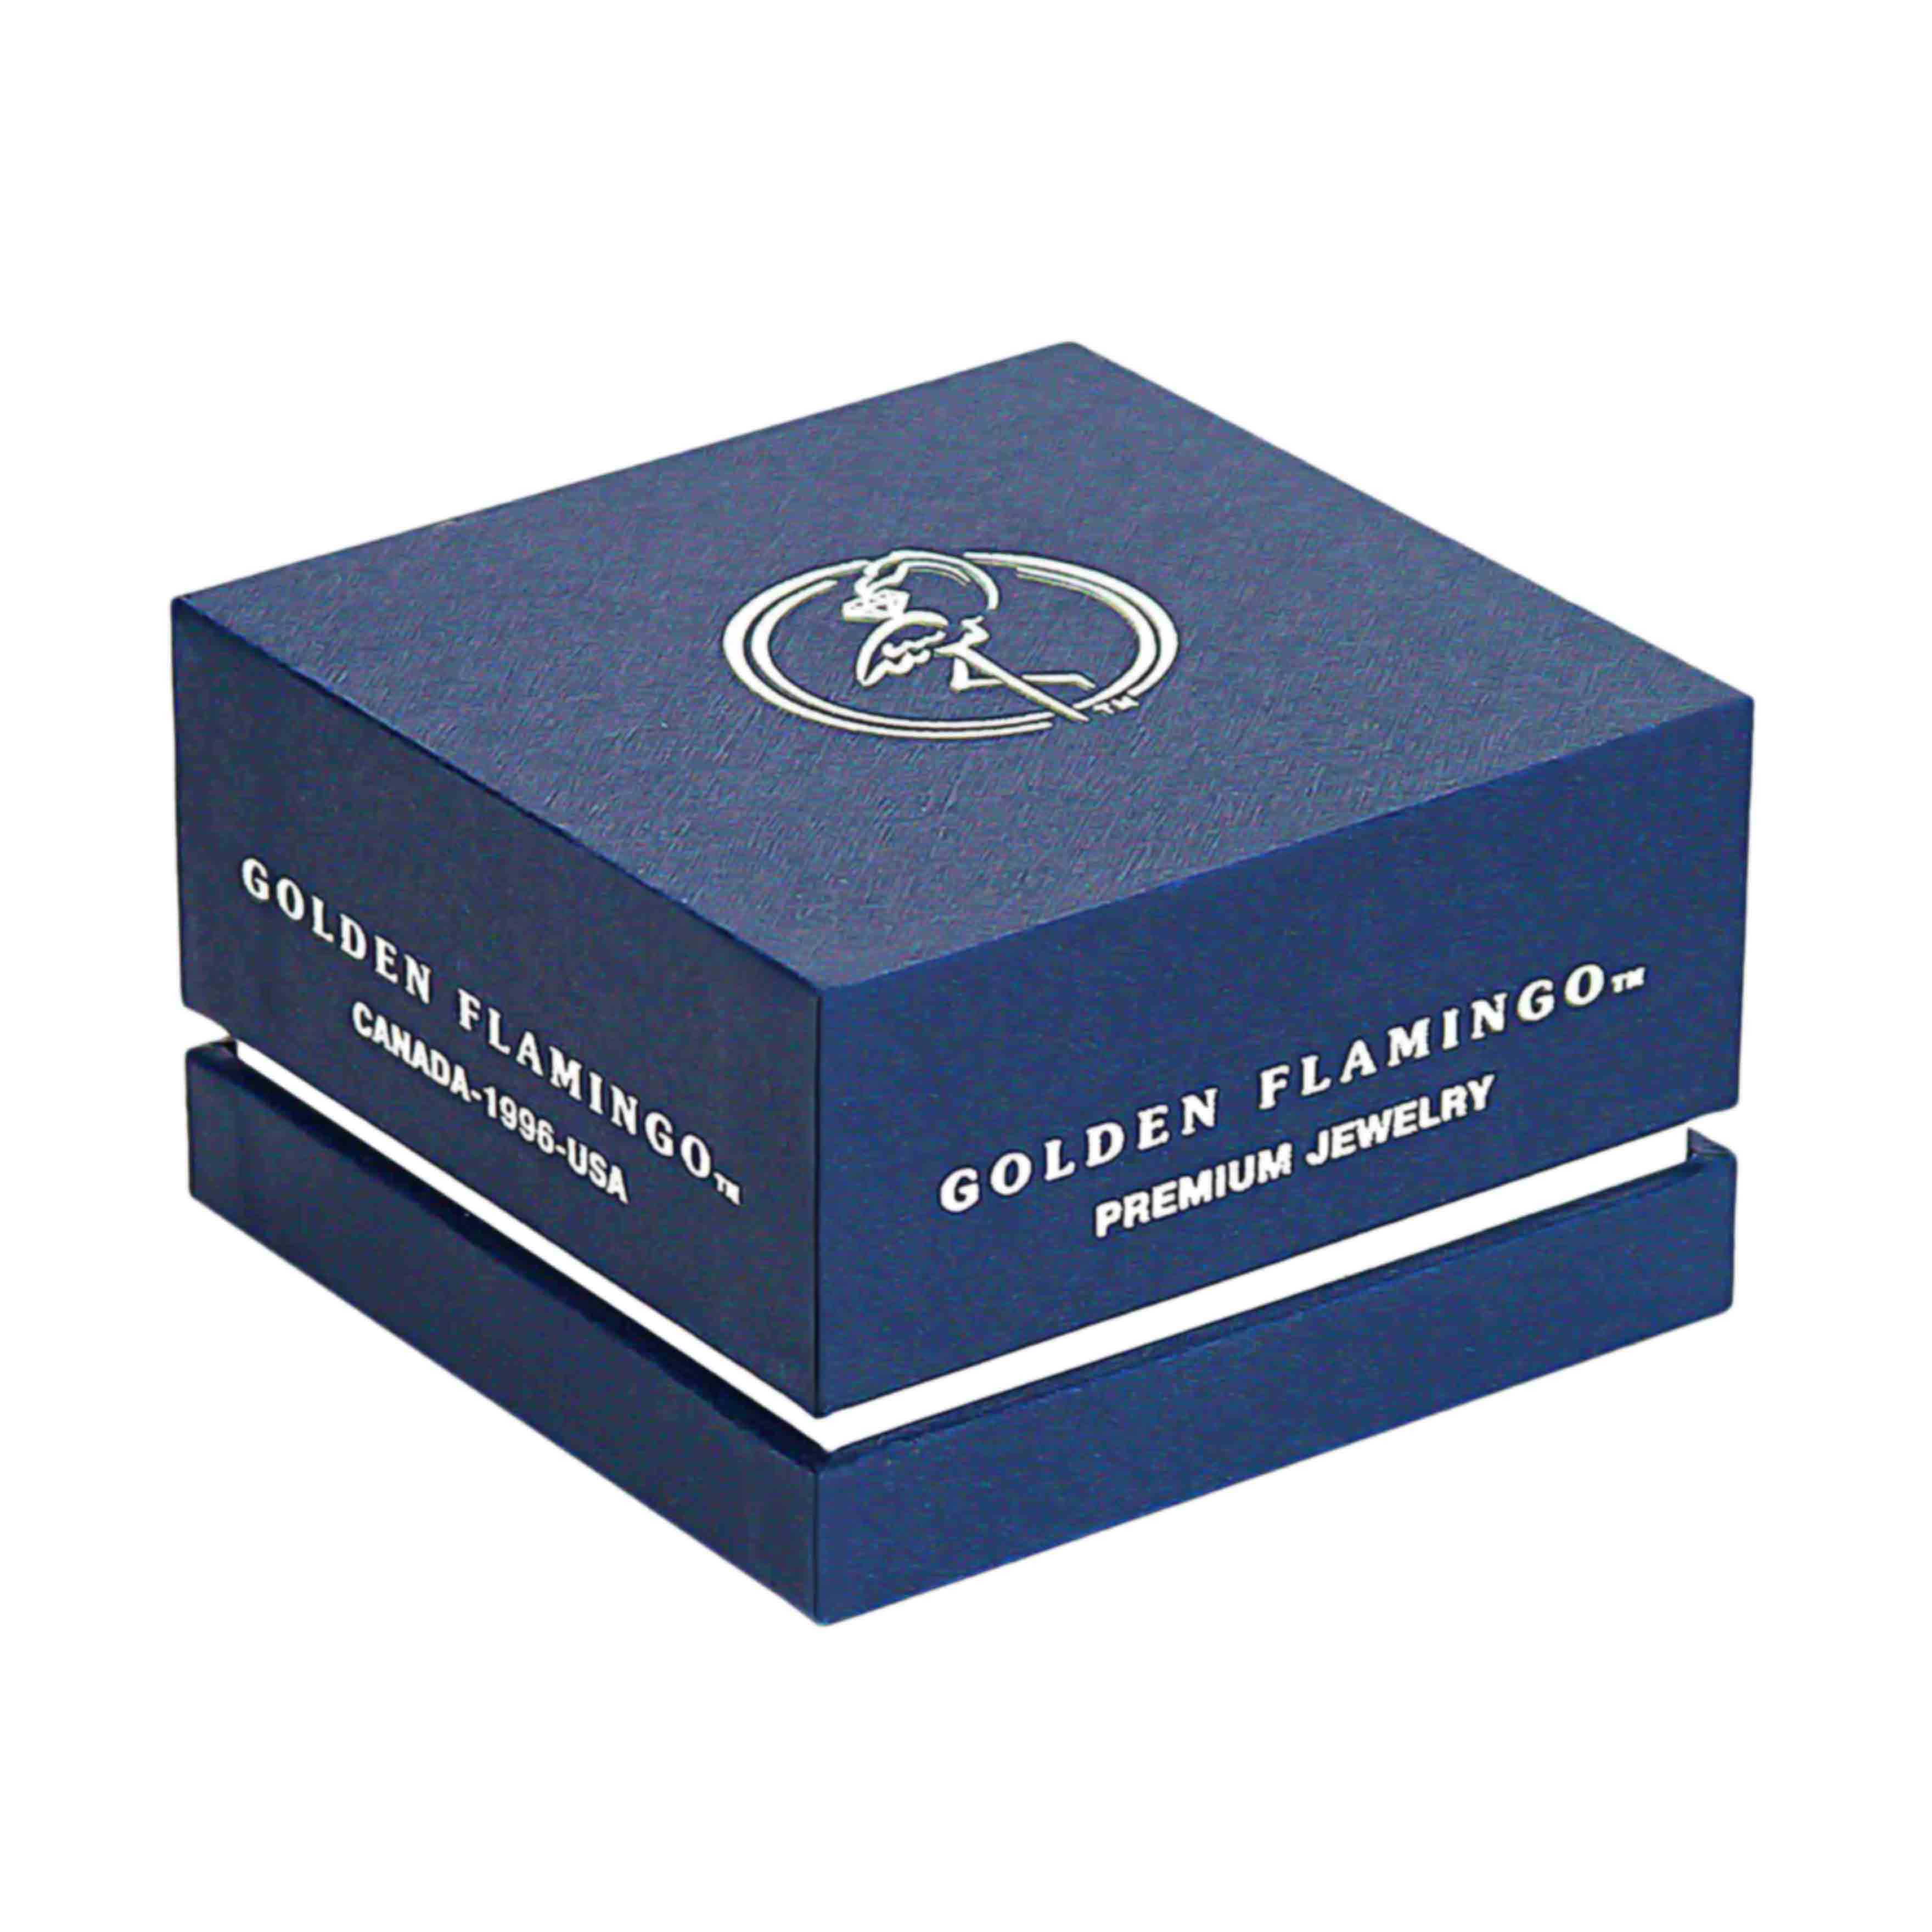 Boutique-quality gift box for water sterilizer by Golden Flamingo